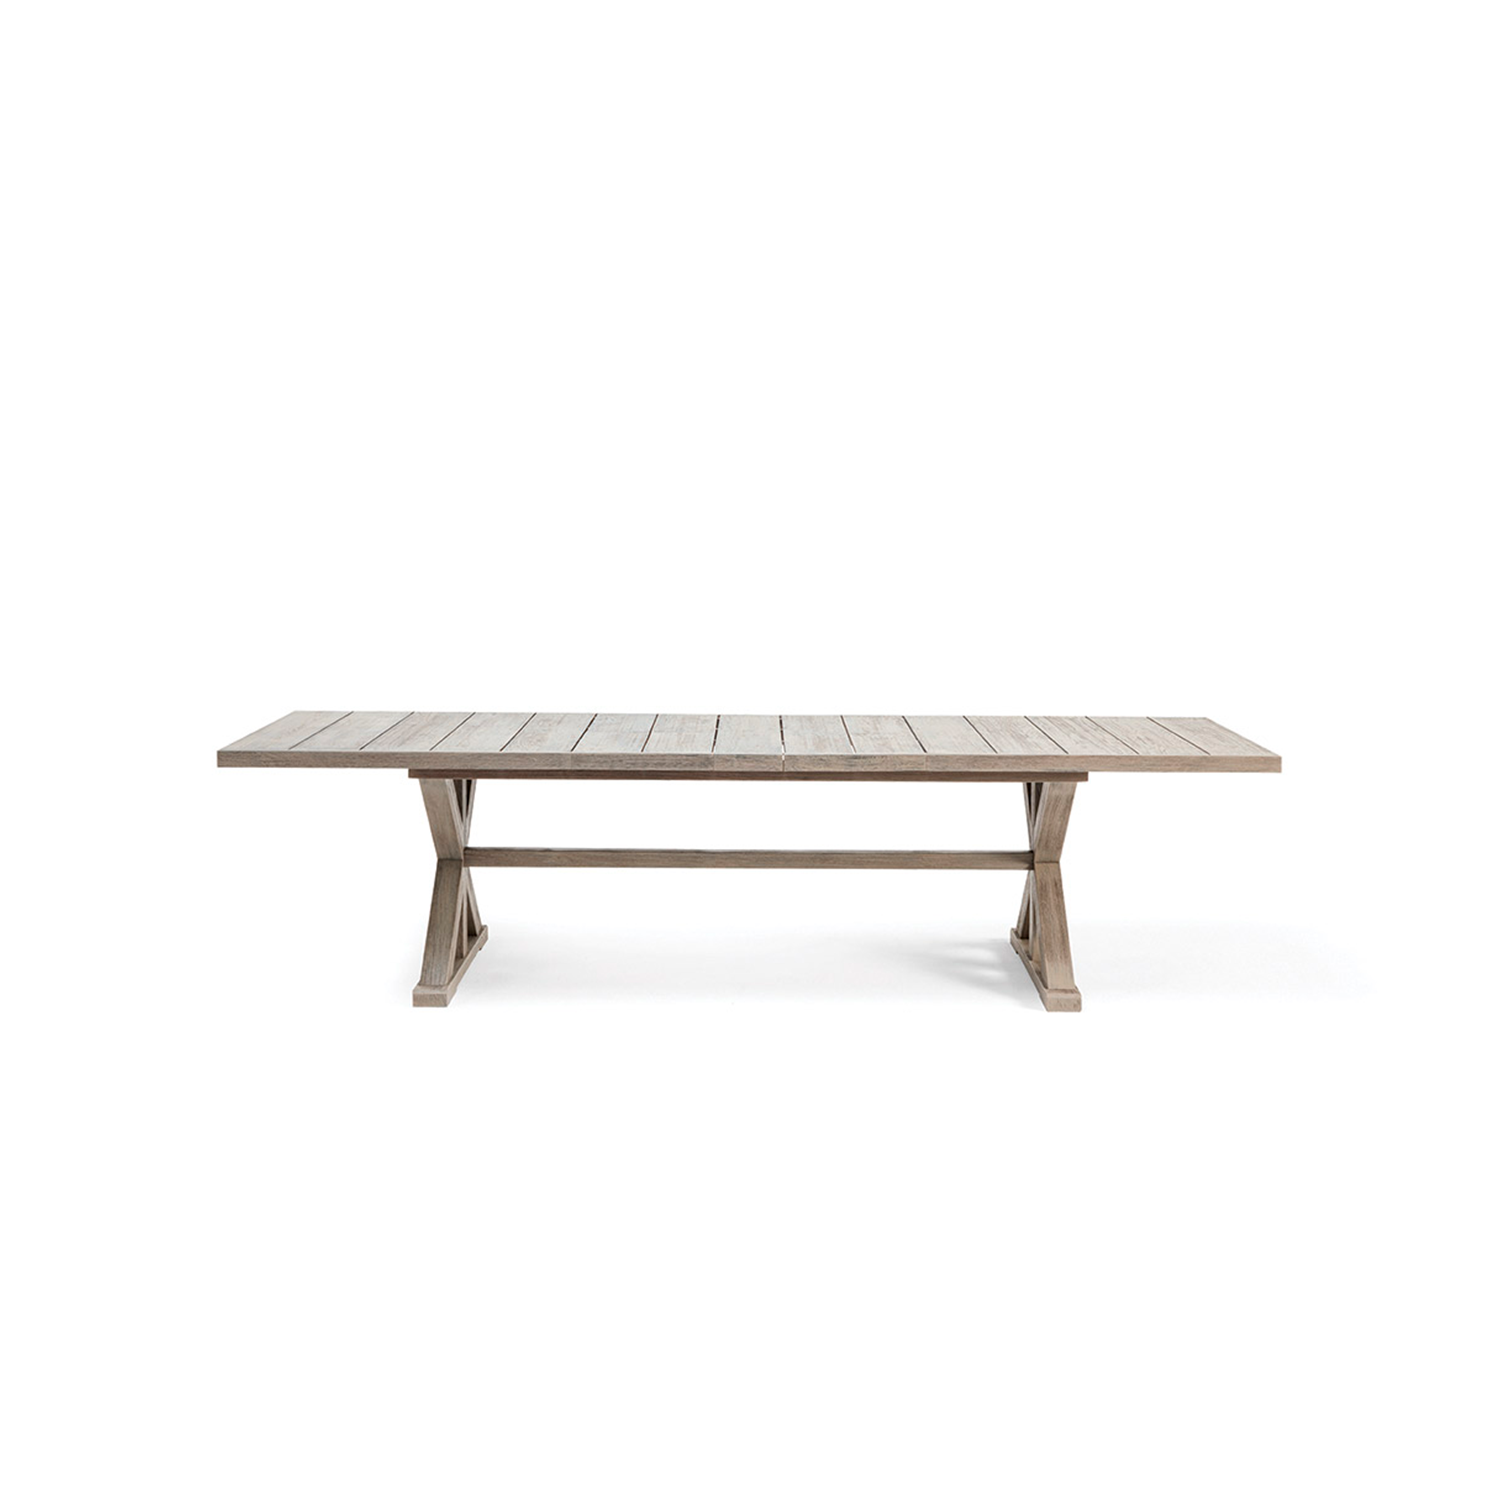 Cronos Extendable Rectangular Dining Table - Made of natural or pickled teak, the Cronos tables collection recalls the artisan tradition of wood. The base, which supports the tops, creates geometries and symmetries with a classic contemporary style.  Rain cover is available at extra cost. Please enquire for more information. | Matter of Stuff